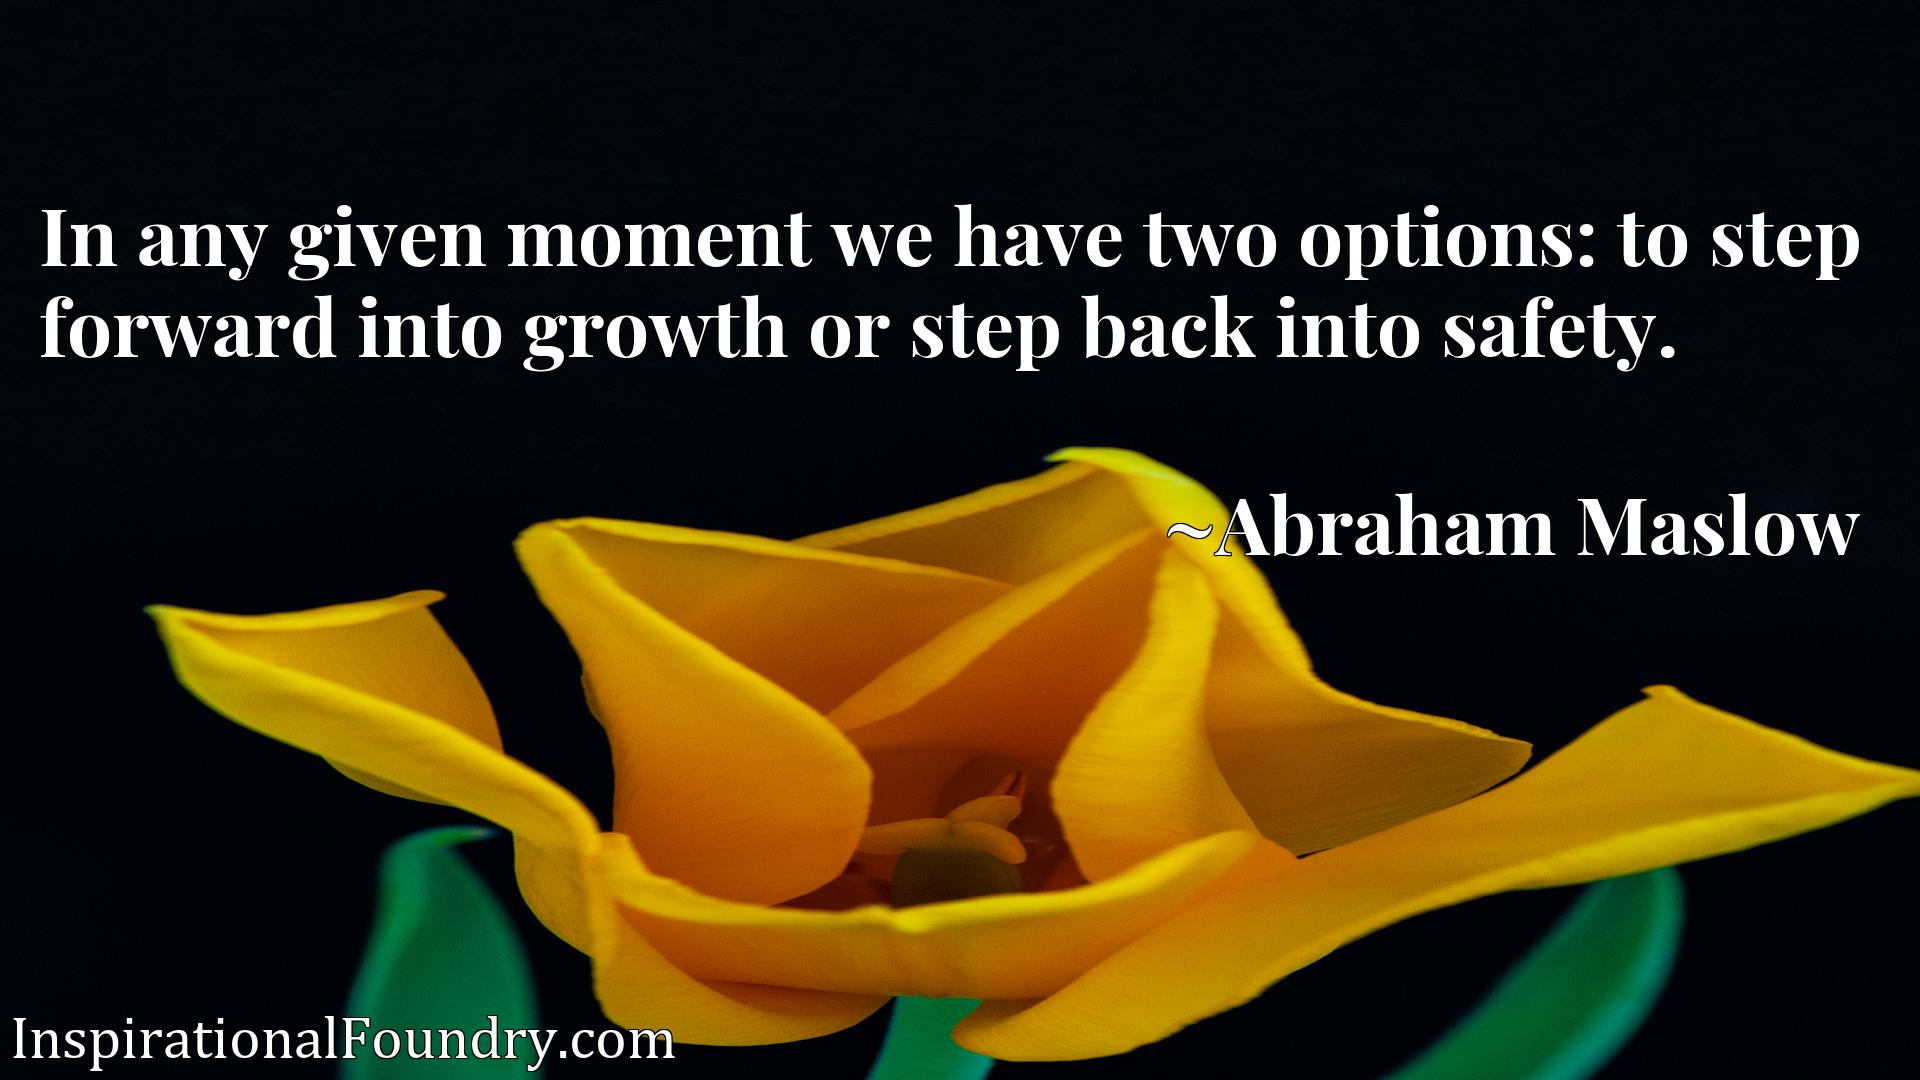 In any given moment we have two options: to step forward into growth or step back into safety.